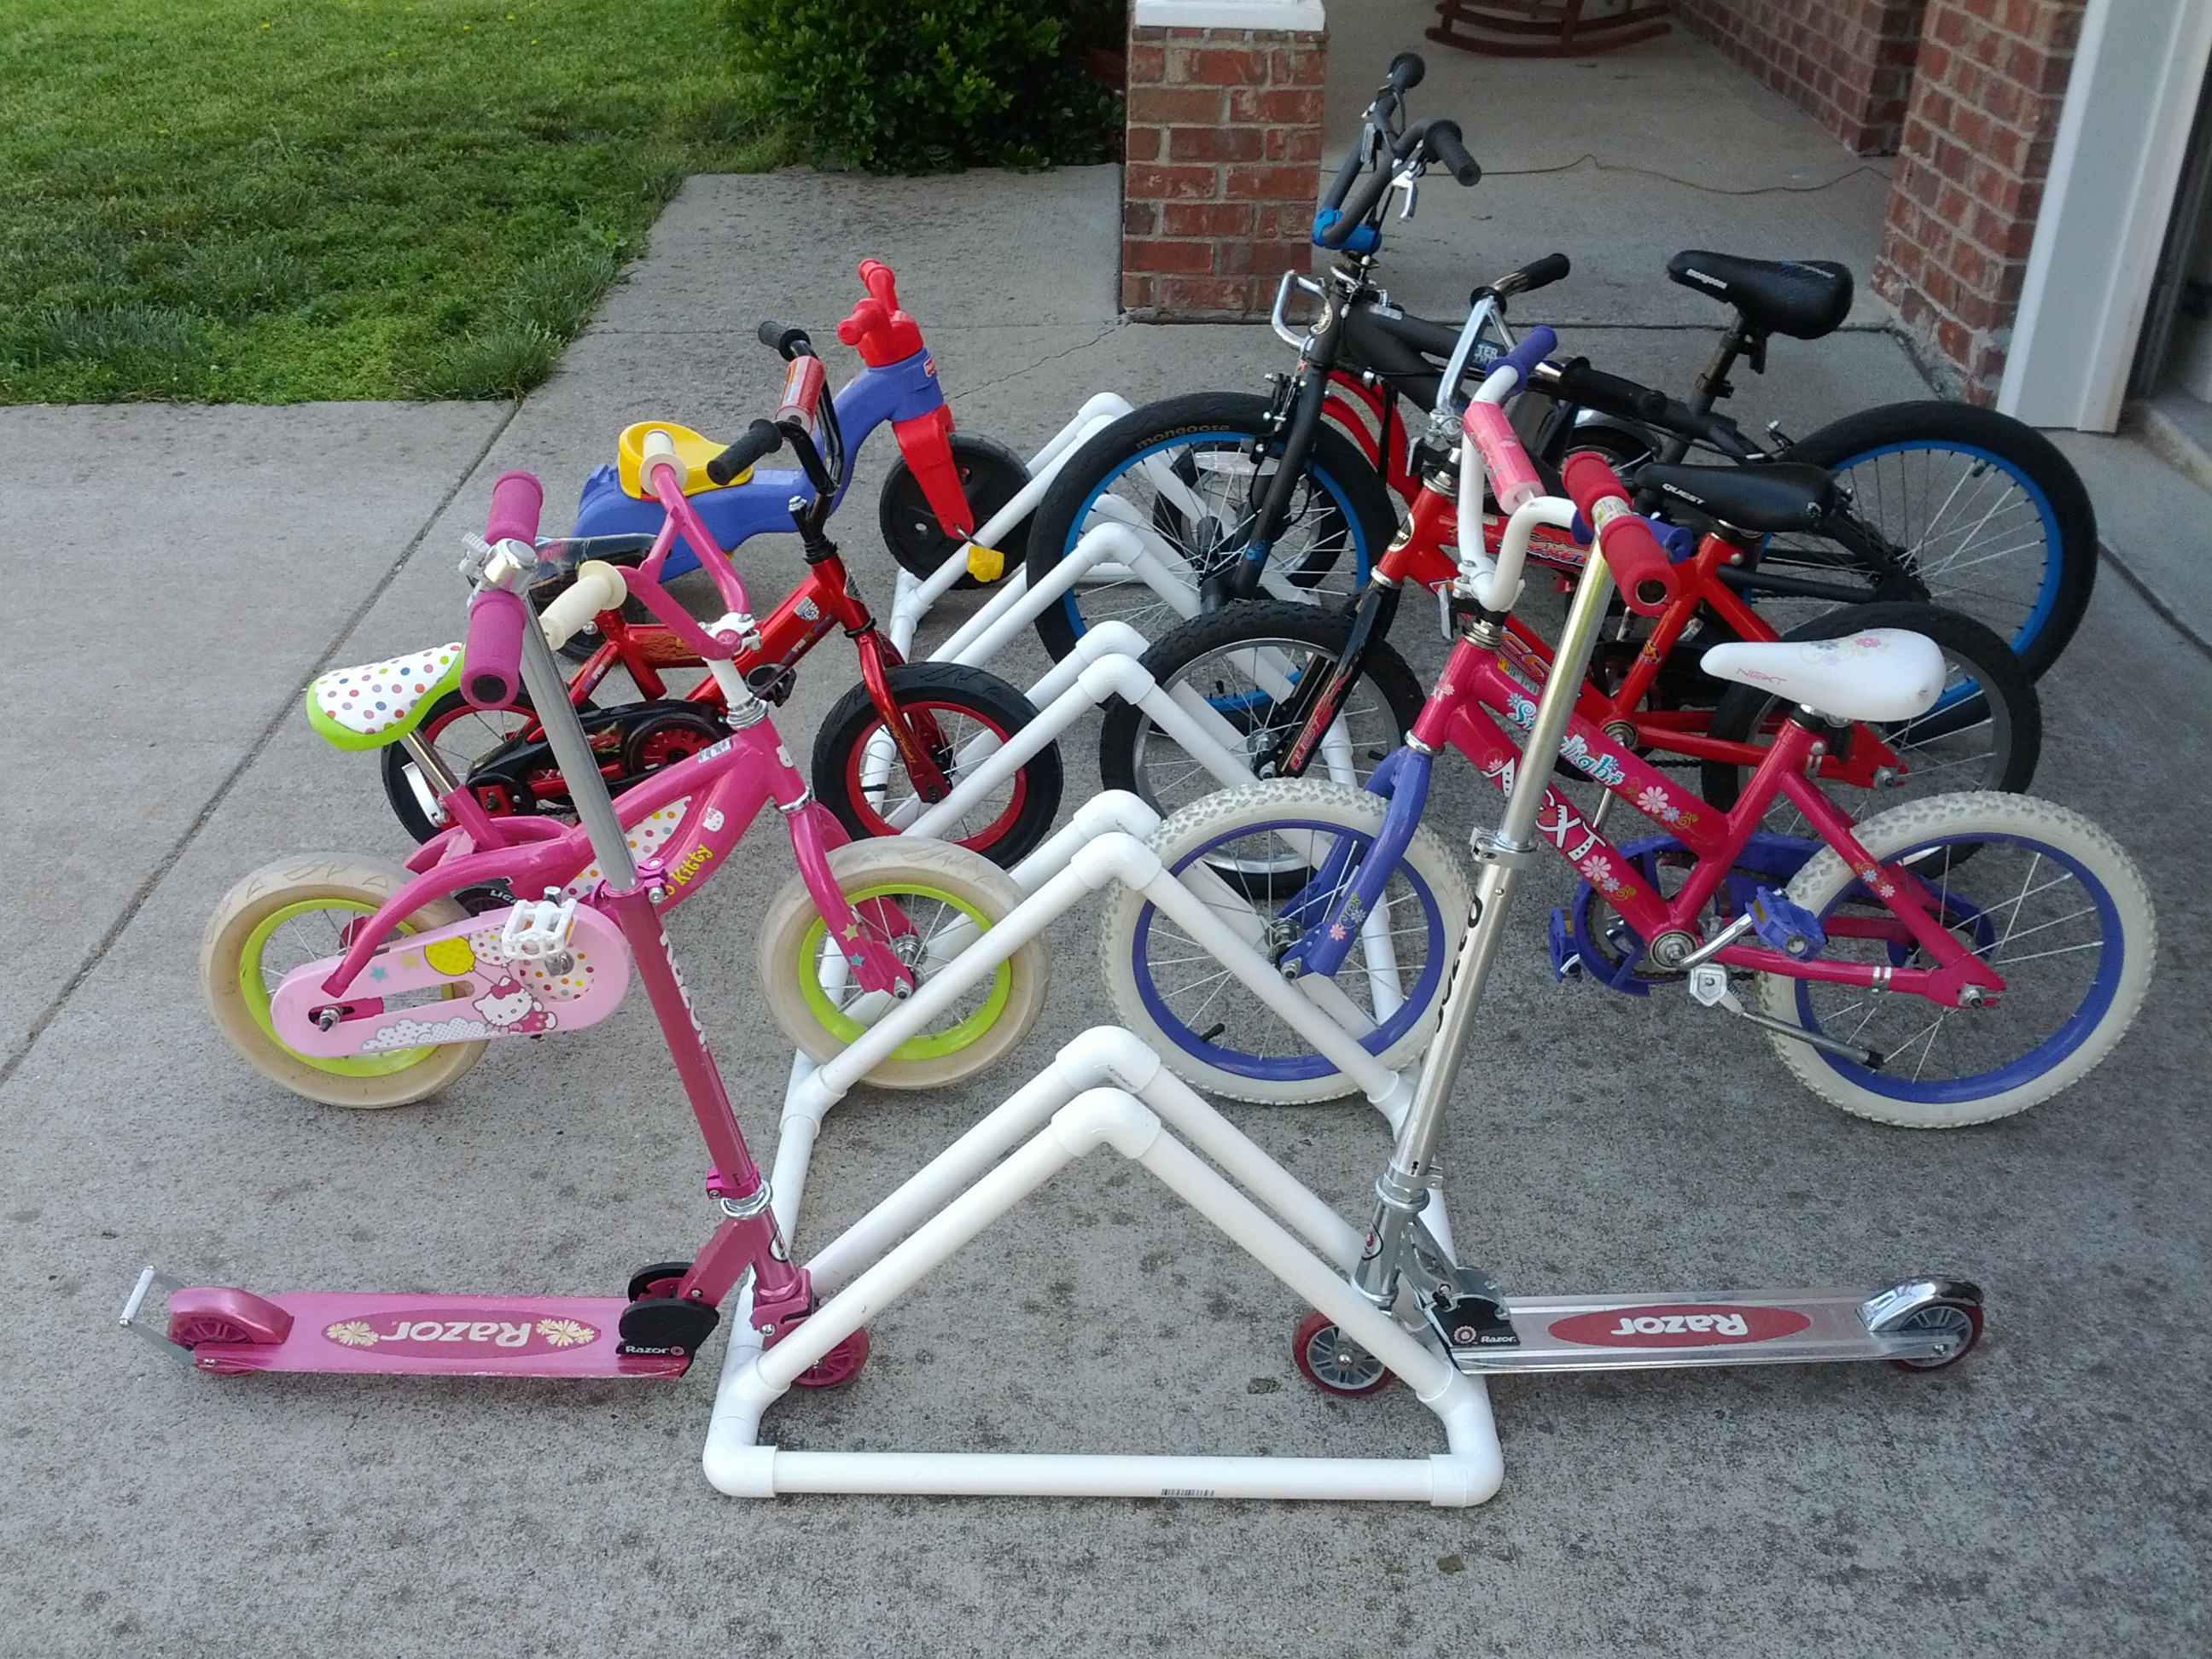 Best ideas about DIY Bike Racks . Save or Pin Project 4 – DIY Bike Rack Made from PVC Pipe Now.